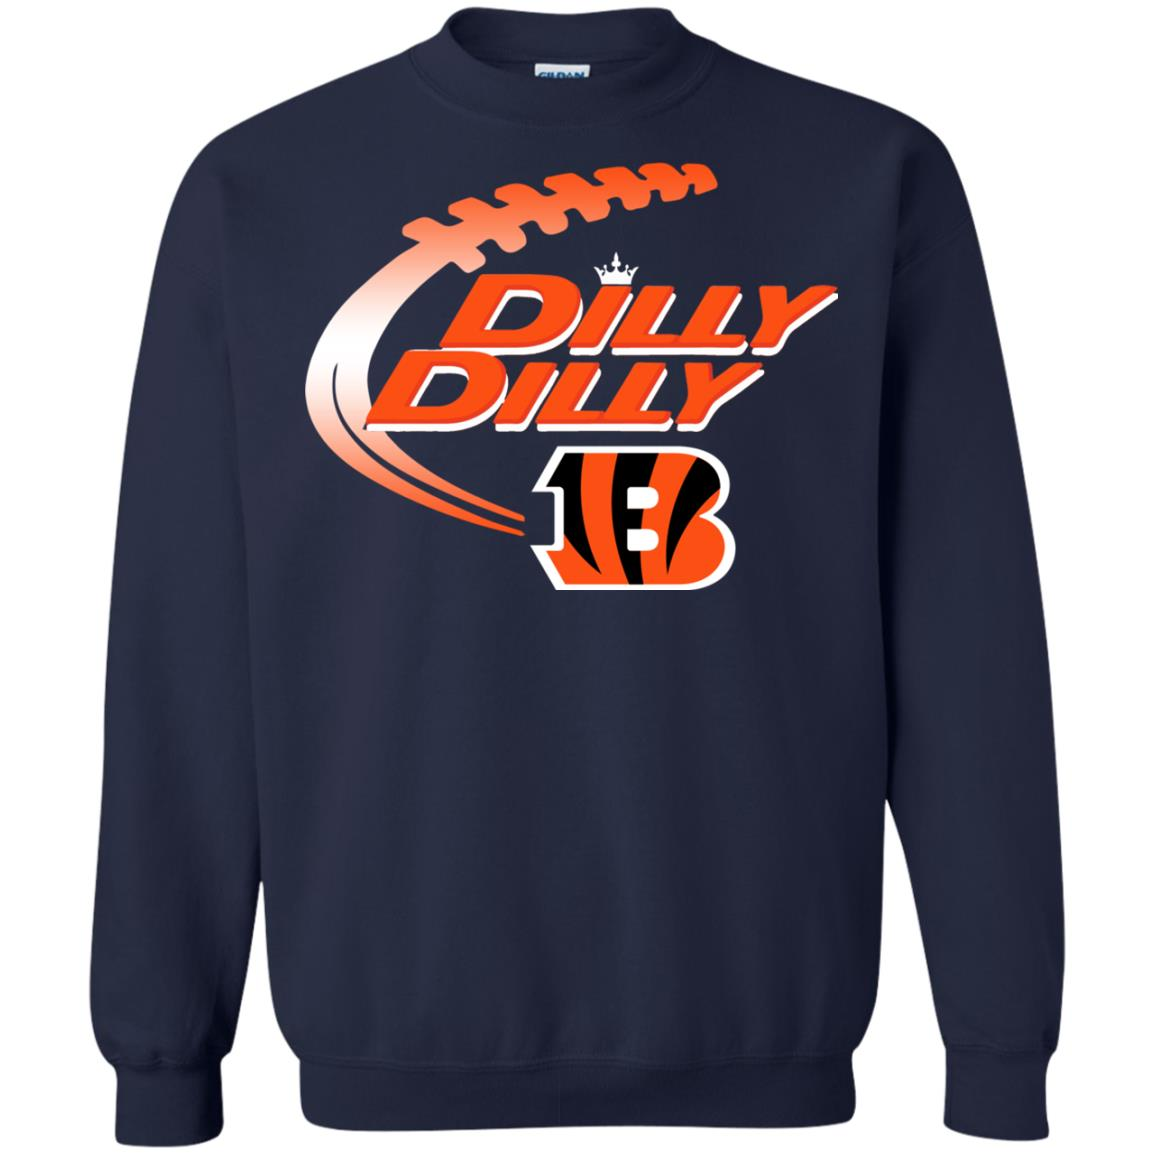 image 1865 - Dilly Dilly Cincinnati Bengals Shirt, Hoodie, Long Sleeve